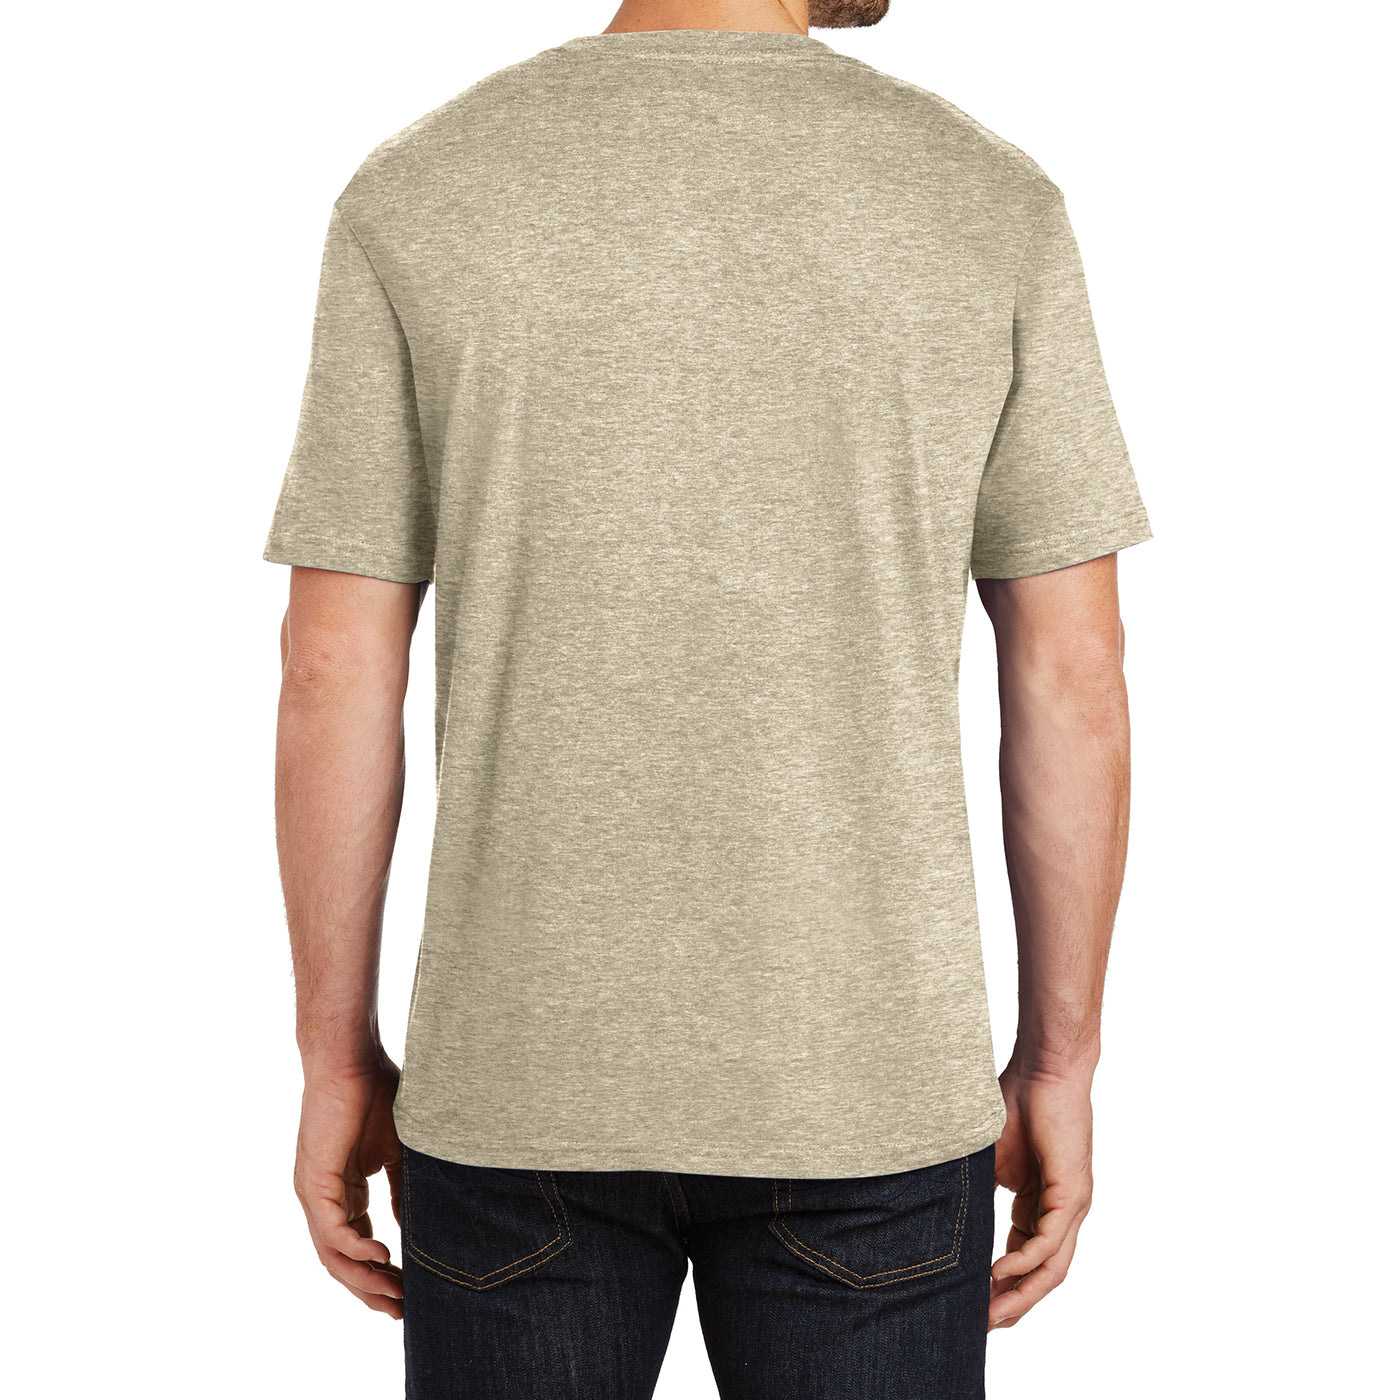 Mens Perfect Weight Crew Tee - Heathered Latte - Back